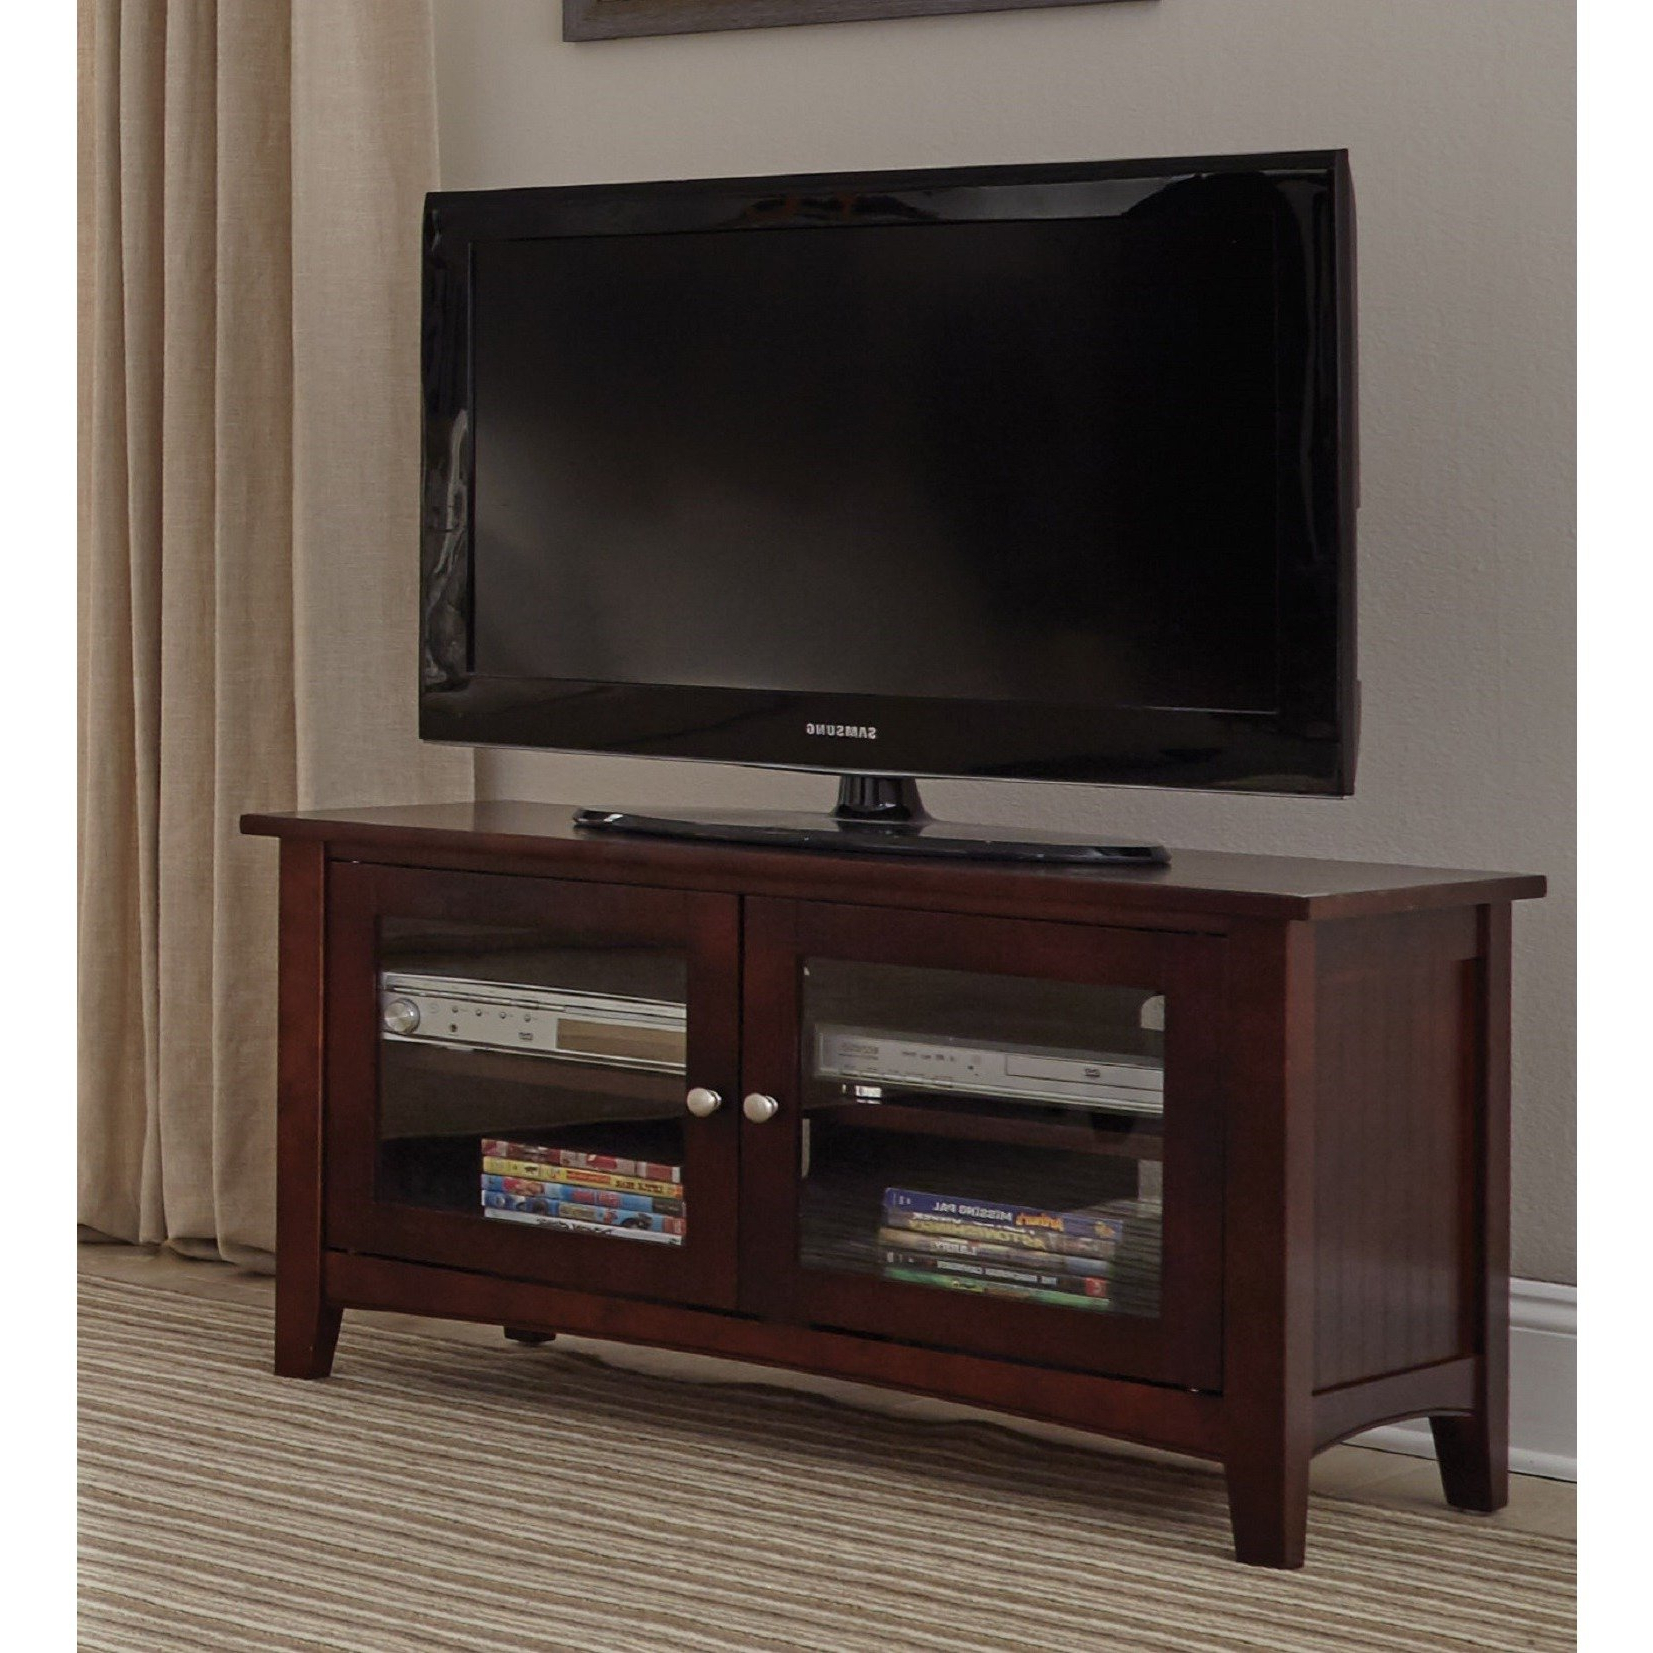 Shop Copper Grove Taber 36 Inch Wood Tv Stand With Glass Doors Regarding Newest Laurent 70 Inch Tv Stands (Gallery 14 of 20)